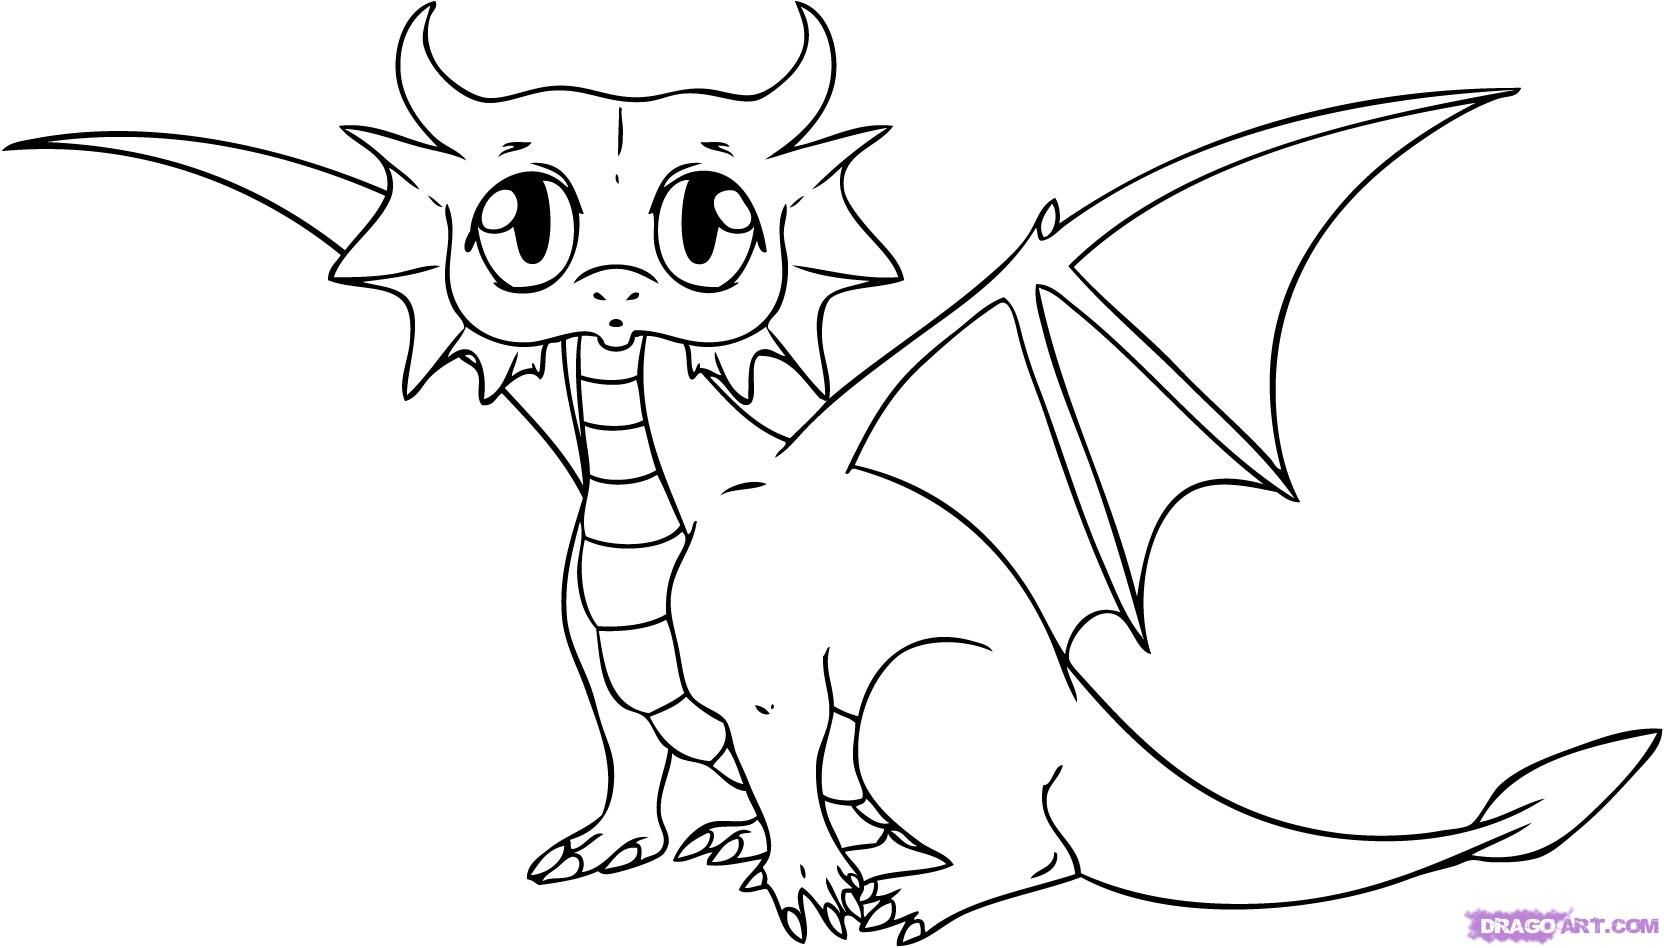 How To Draw A Cartoon Dragon, Step by Step, Drawing Guide